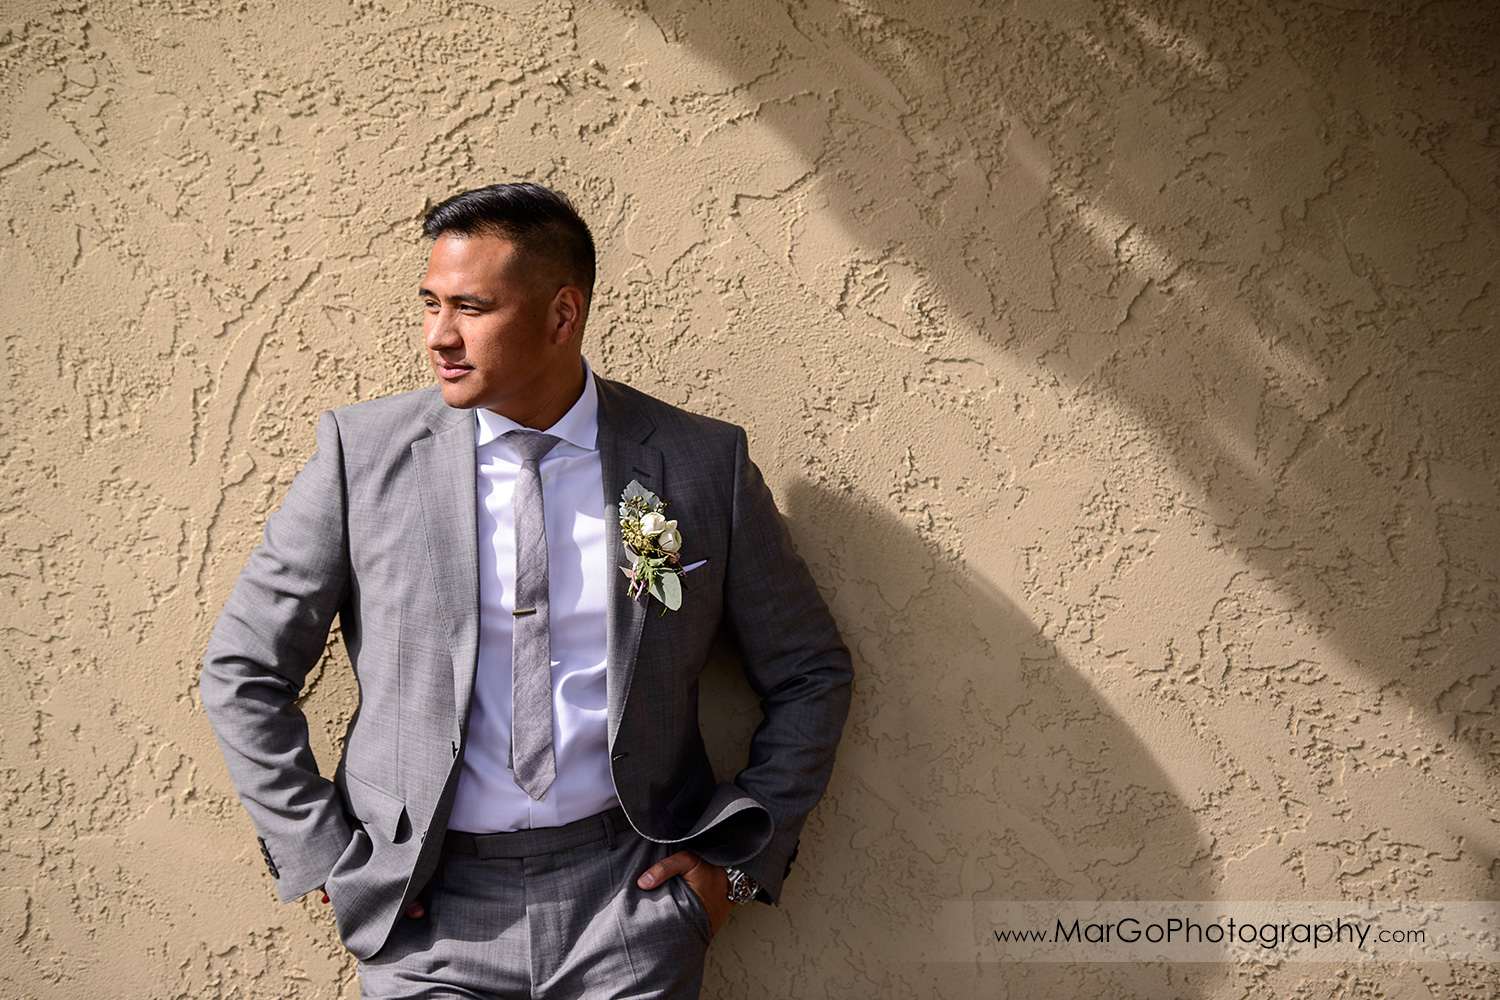 portrait of the groom at Poppy Ridge Golf Course in Livermore